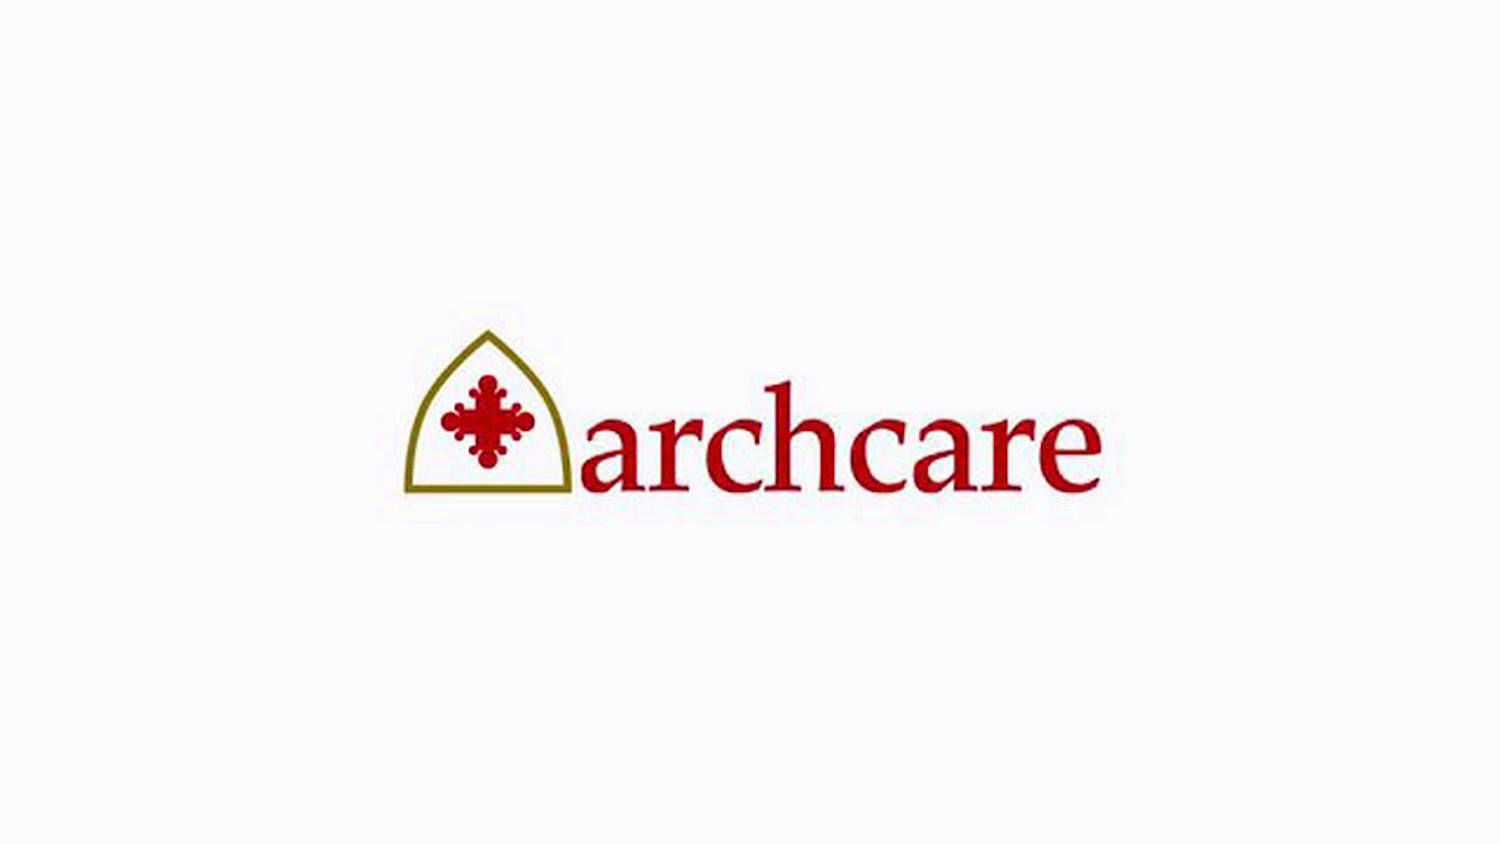 Archcare is such a great host! Learn more about it  here:https://www.archcare.org/